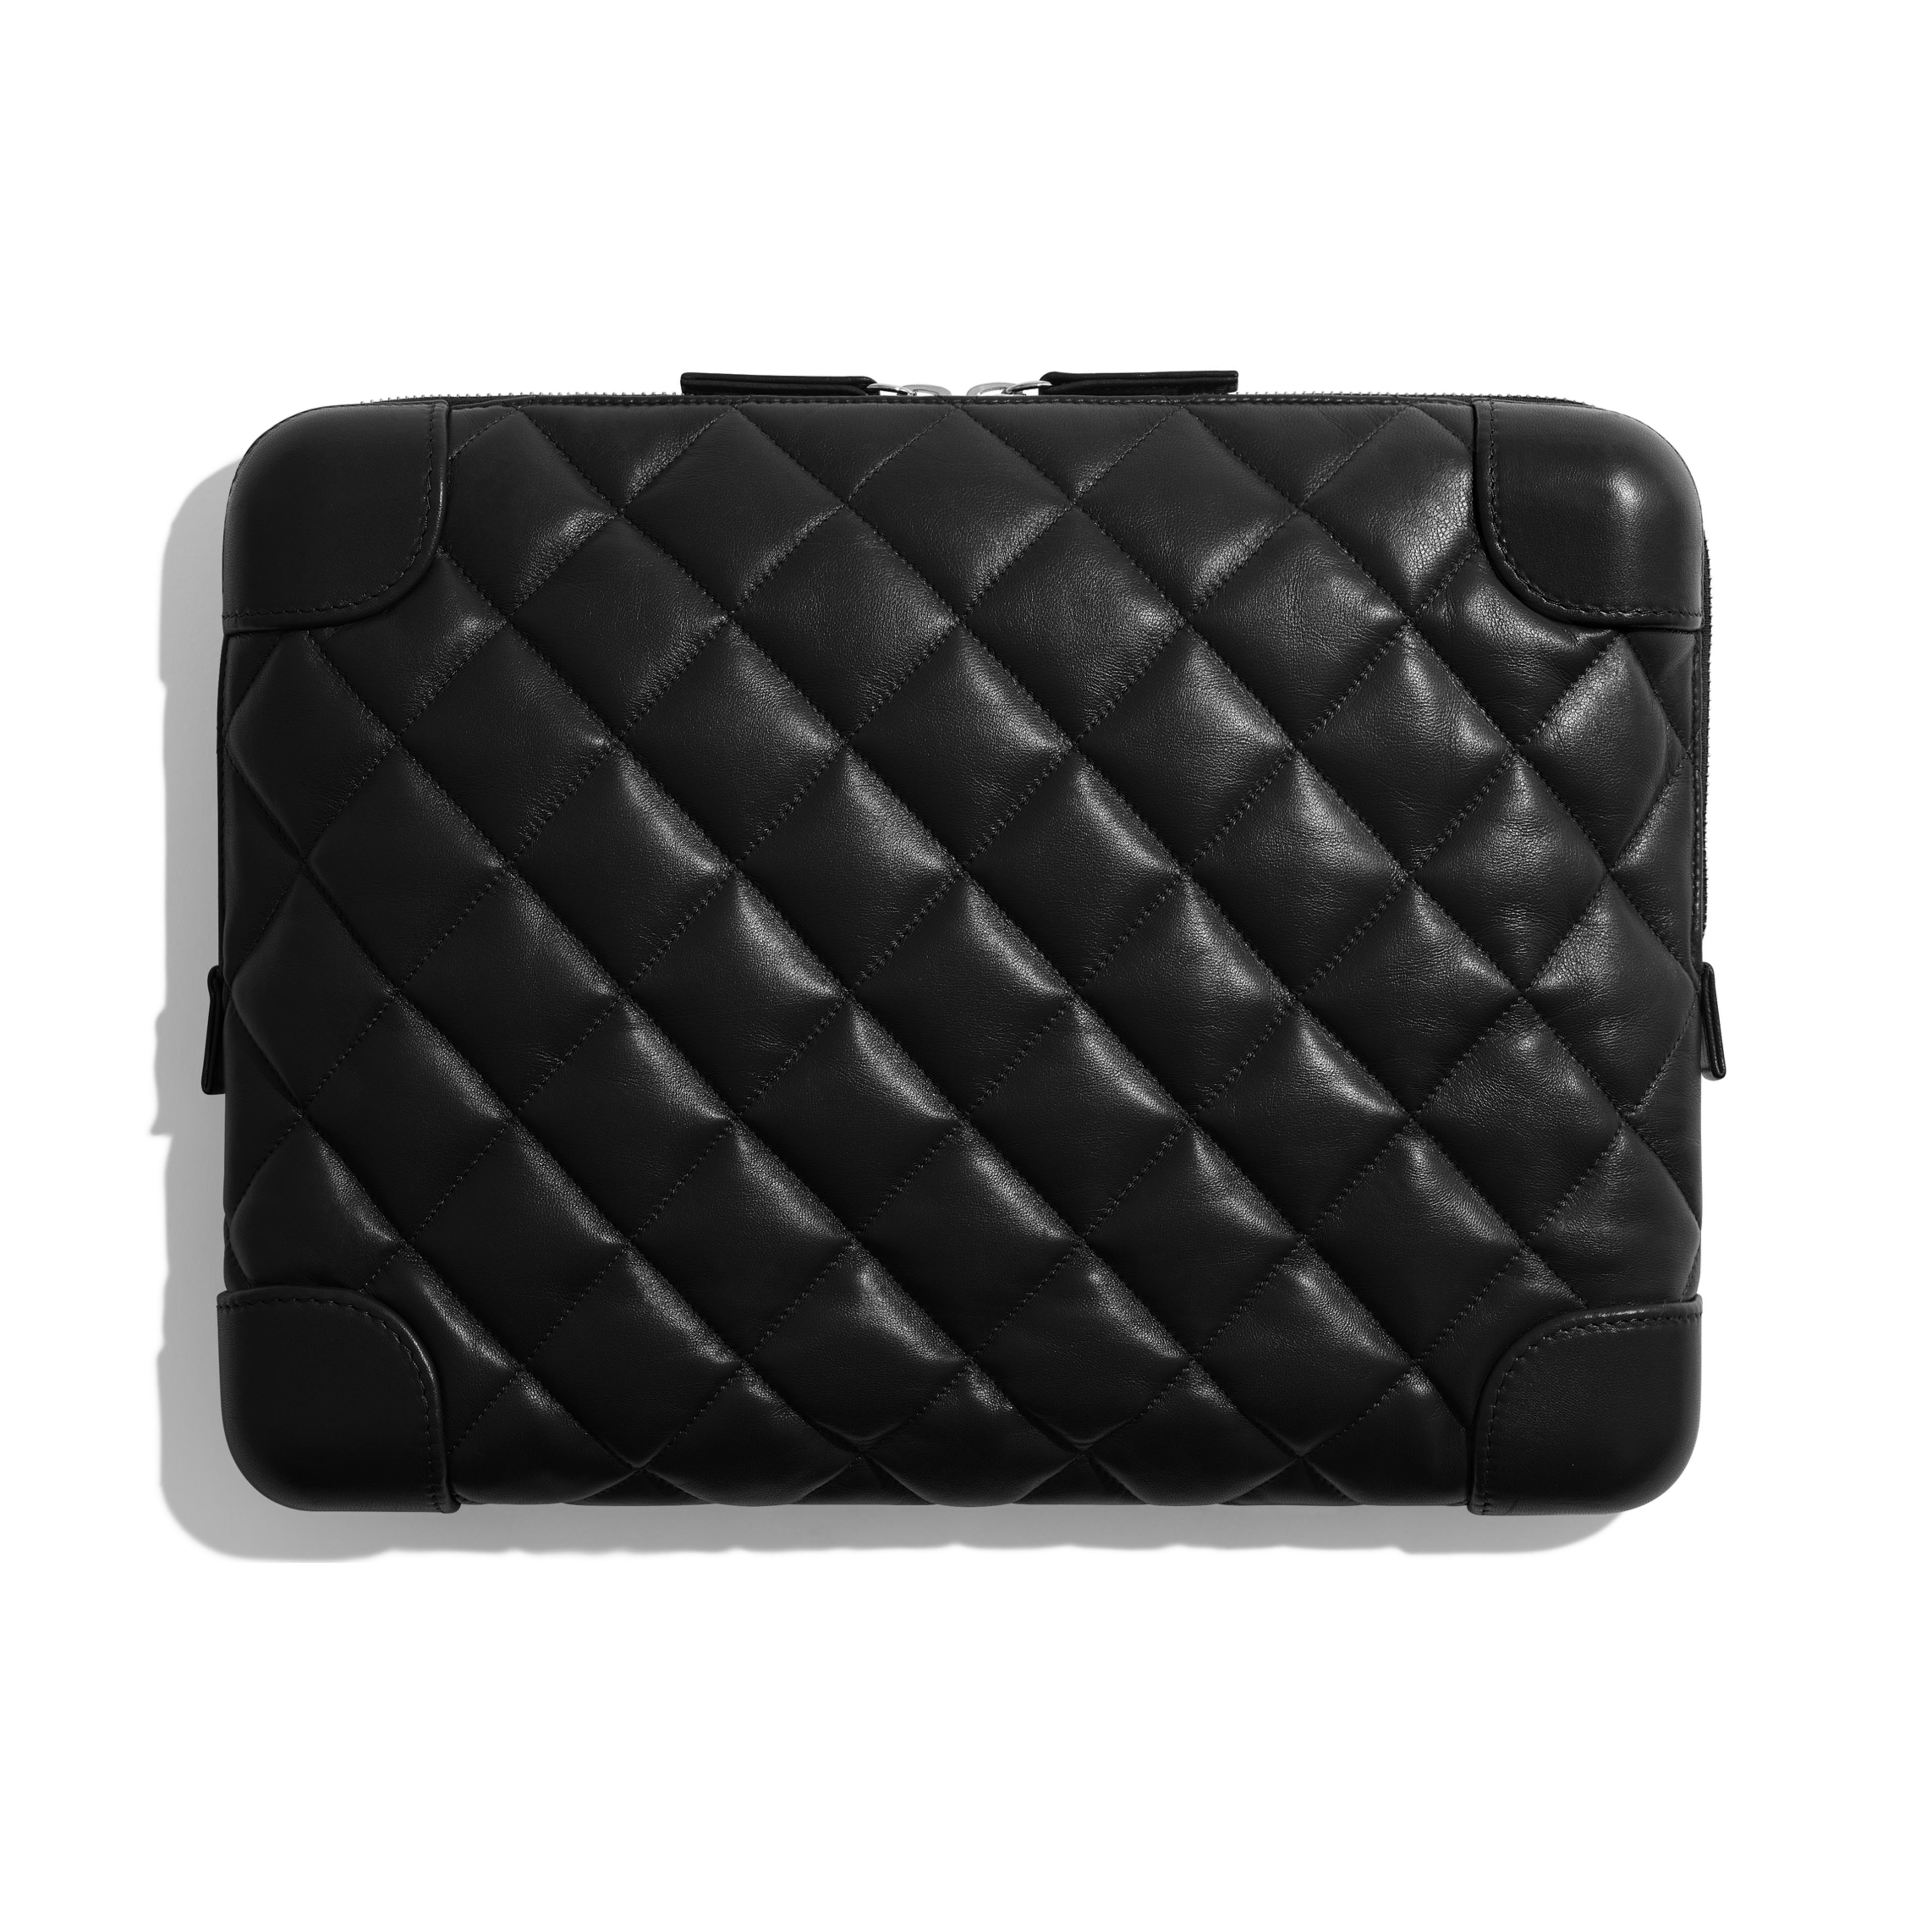 Large Clutch - Black - Lambskin - Alternative view - see full sized version